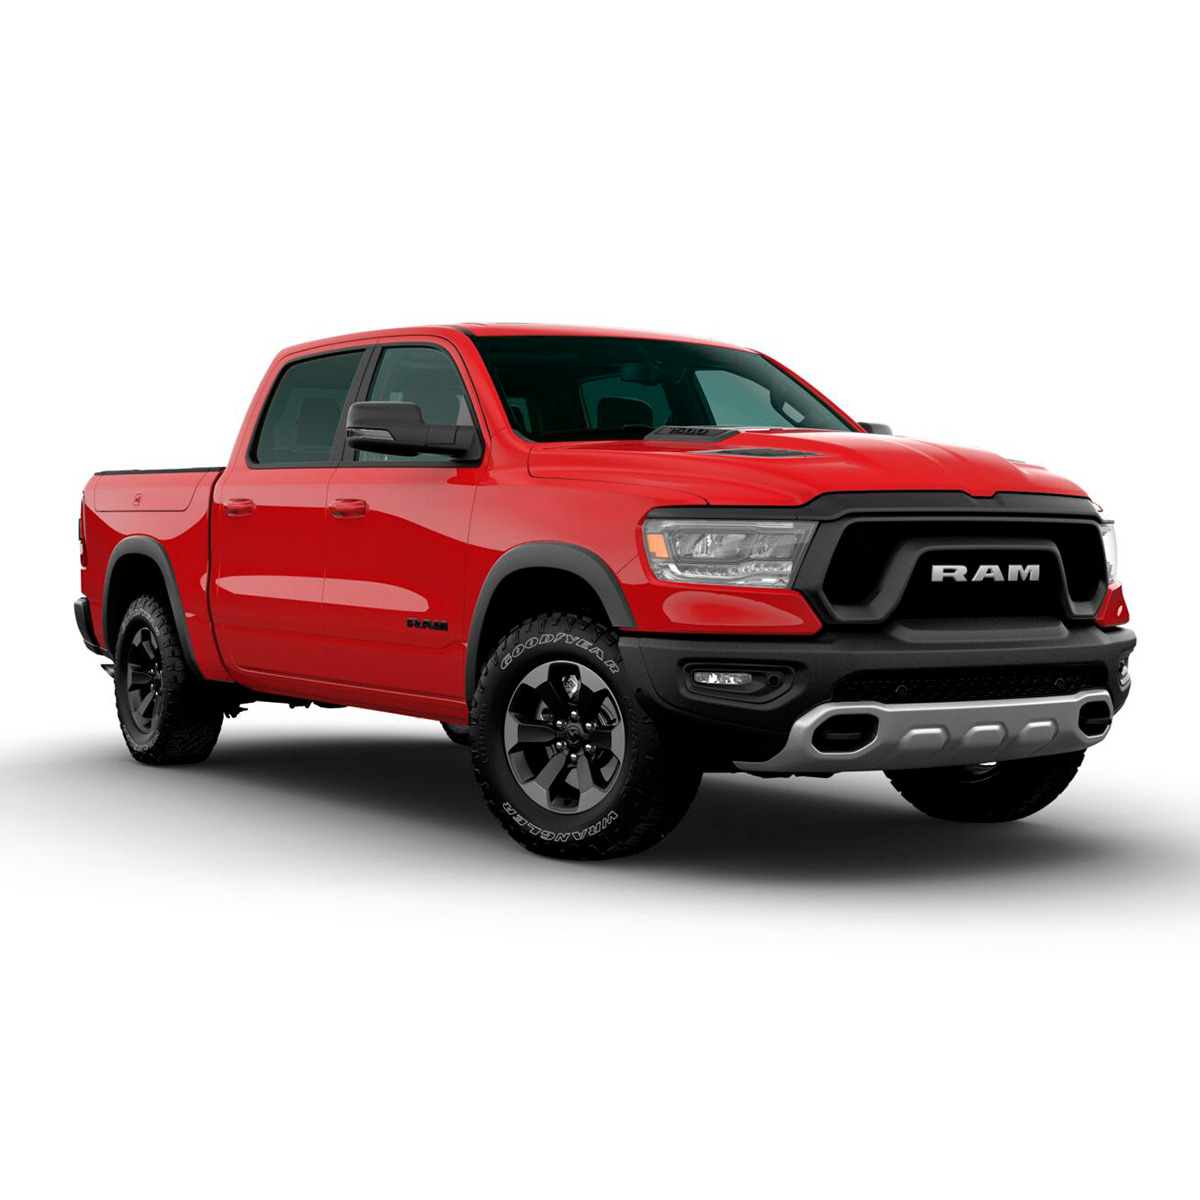 Ram 1500 REBEL CREW CAB 4X4 5.7L AT